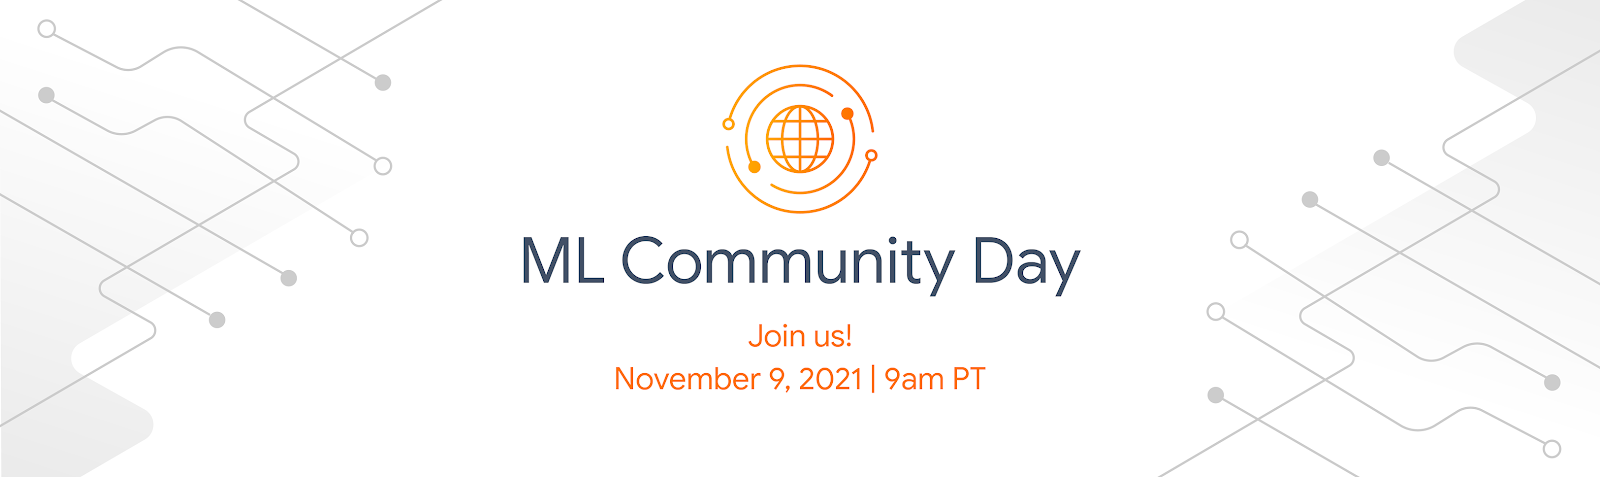 ML Community Day: Save the date